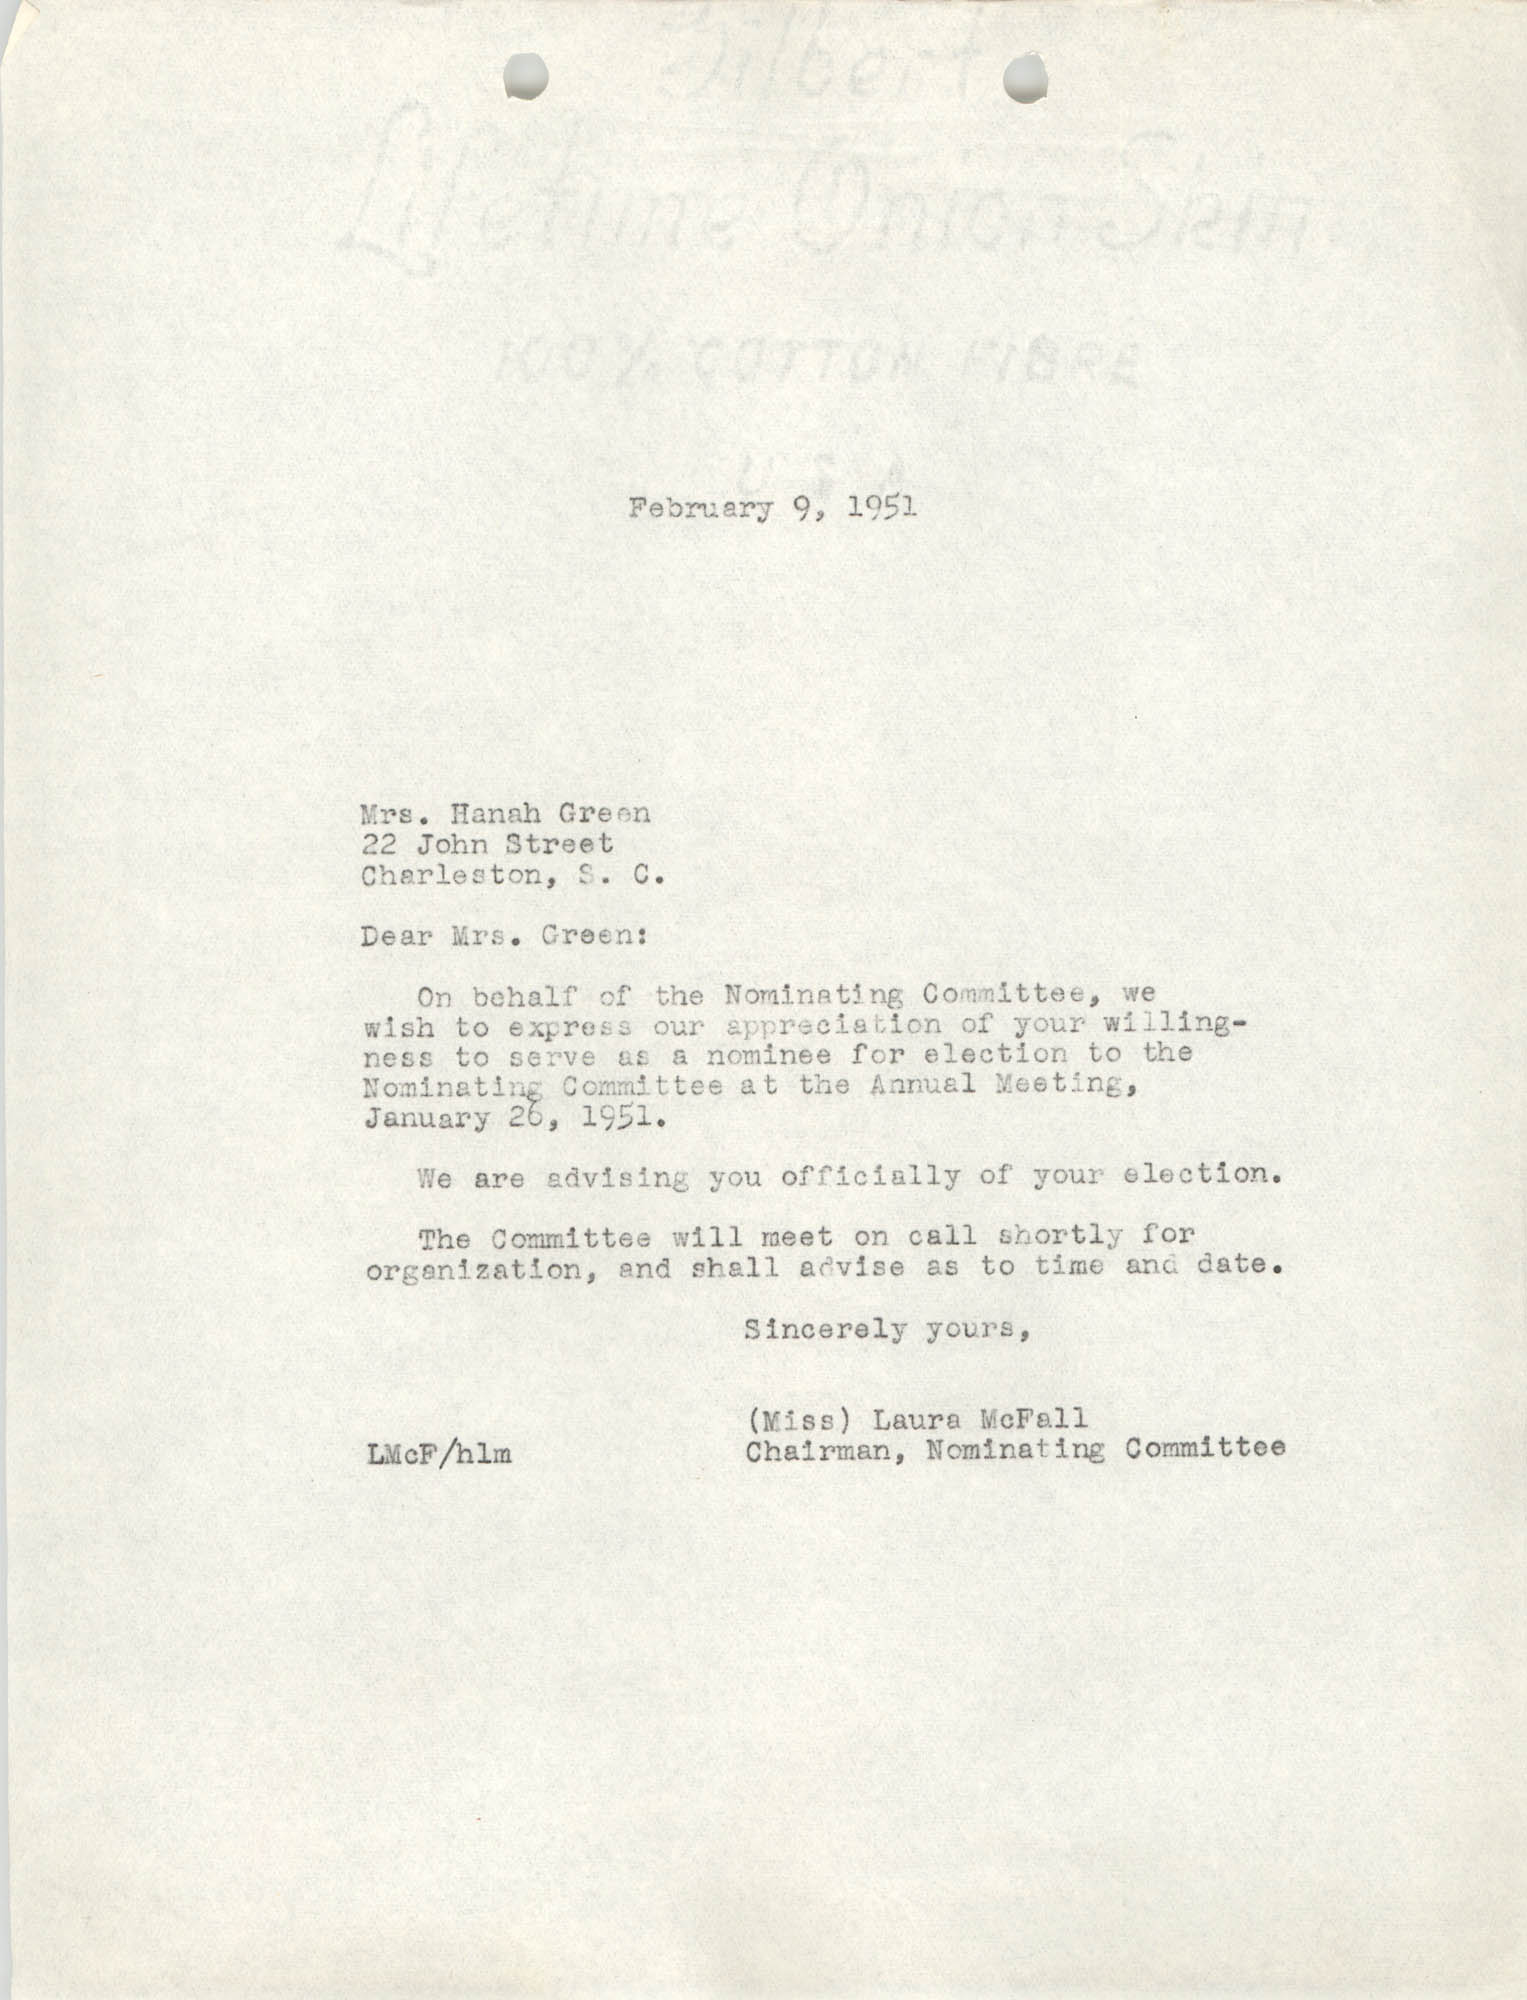 Letter from Laura McFall to Hanah Green, February 9, 1951